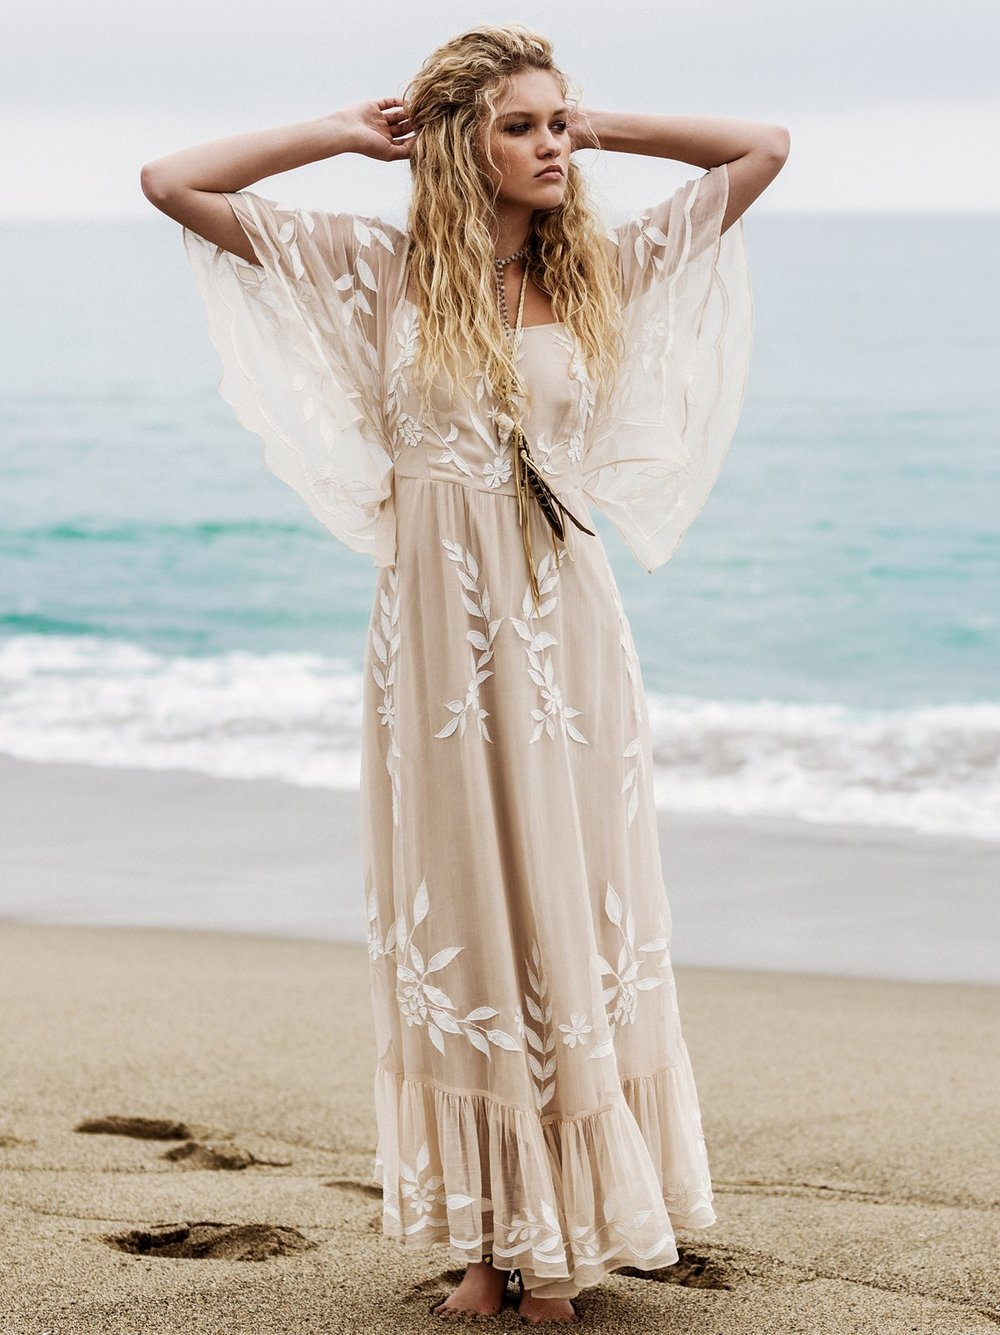 https://www.freepeople.com/shop/enchanted-forest-maxi-dress/?color=011